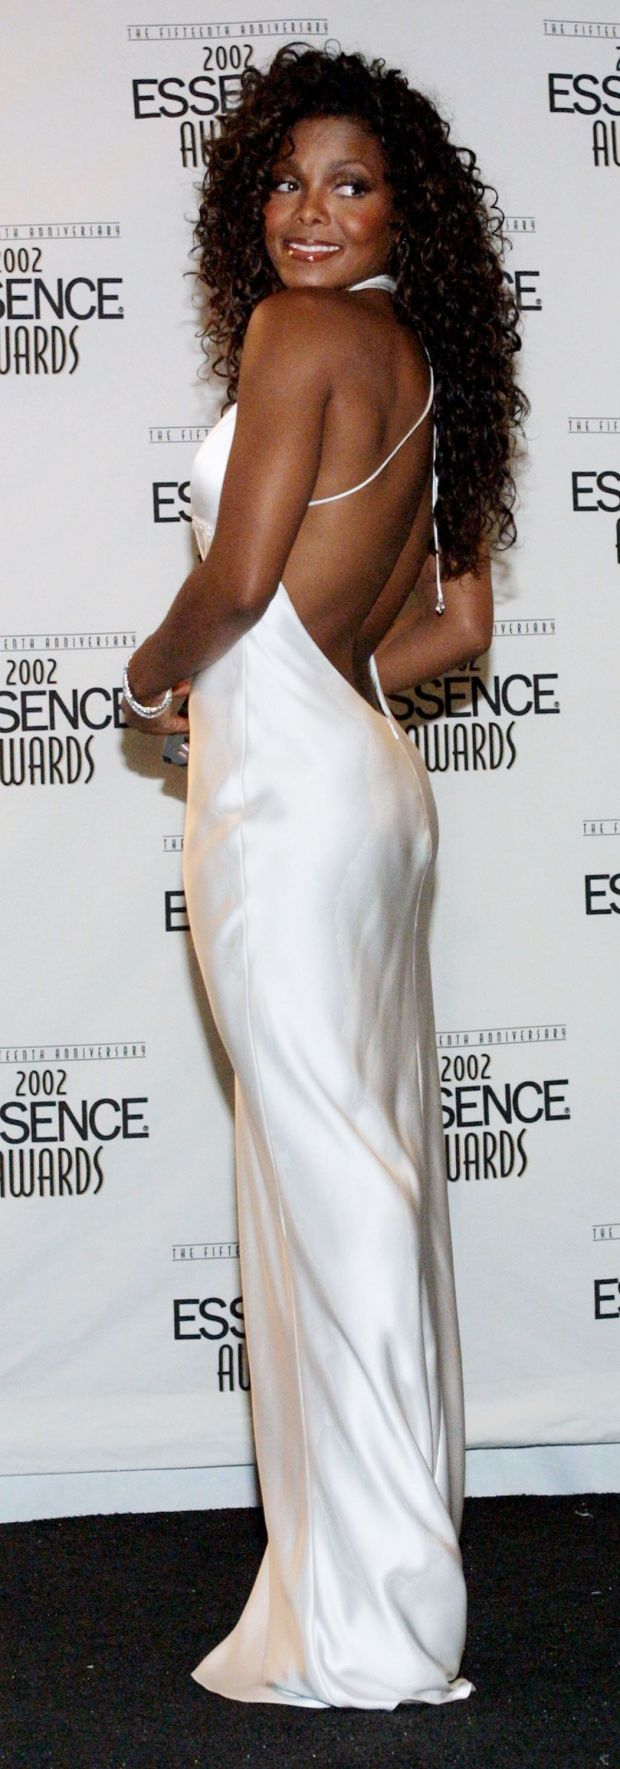 Atthe 15th annual Essence Awards in Los Angeles.